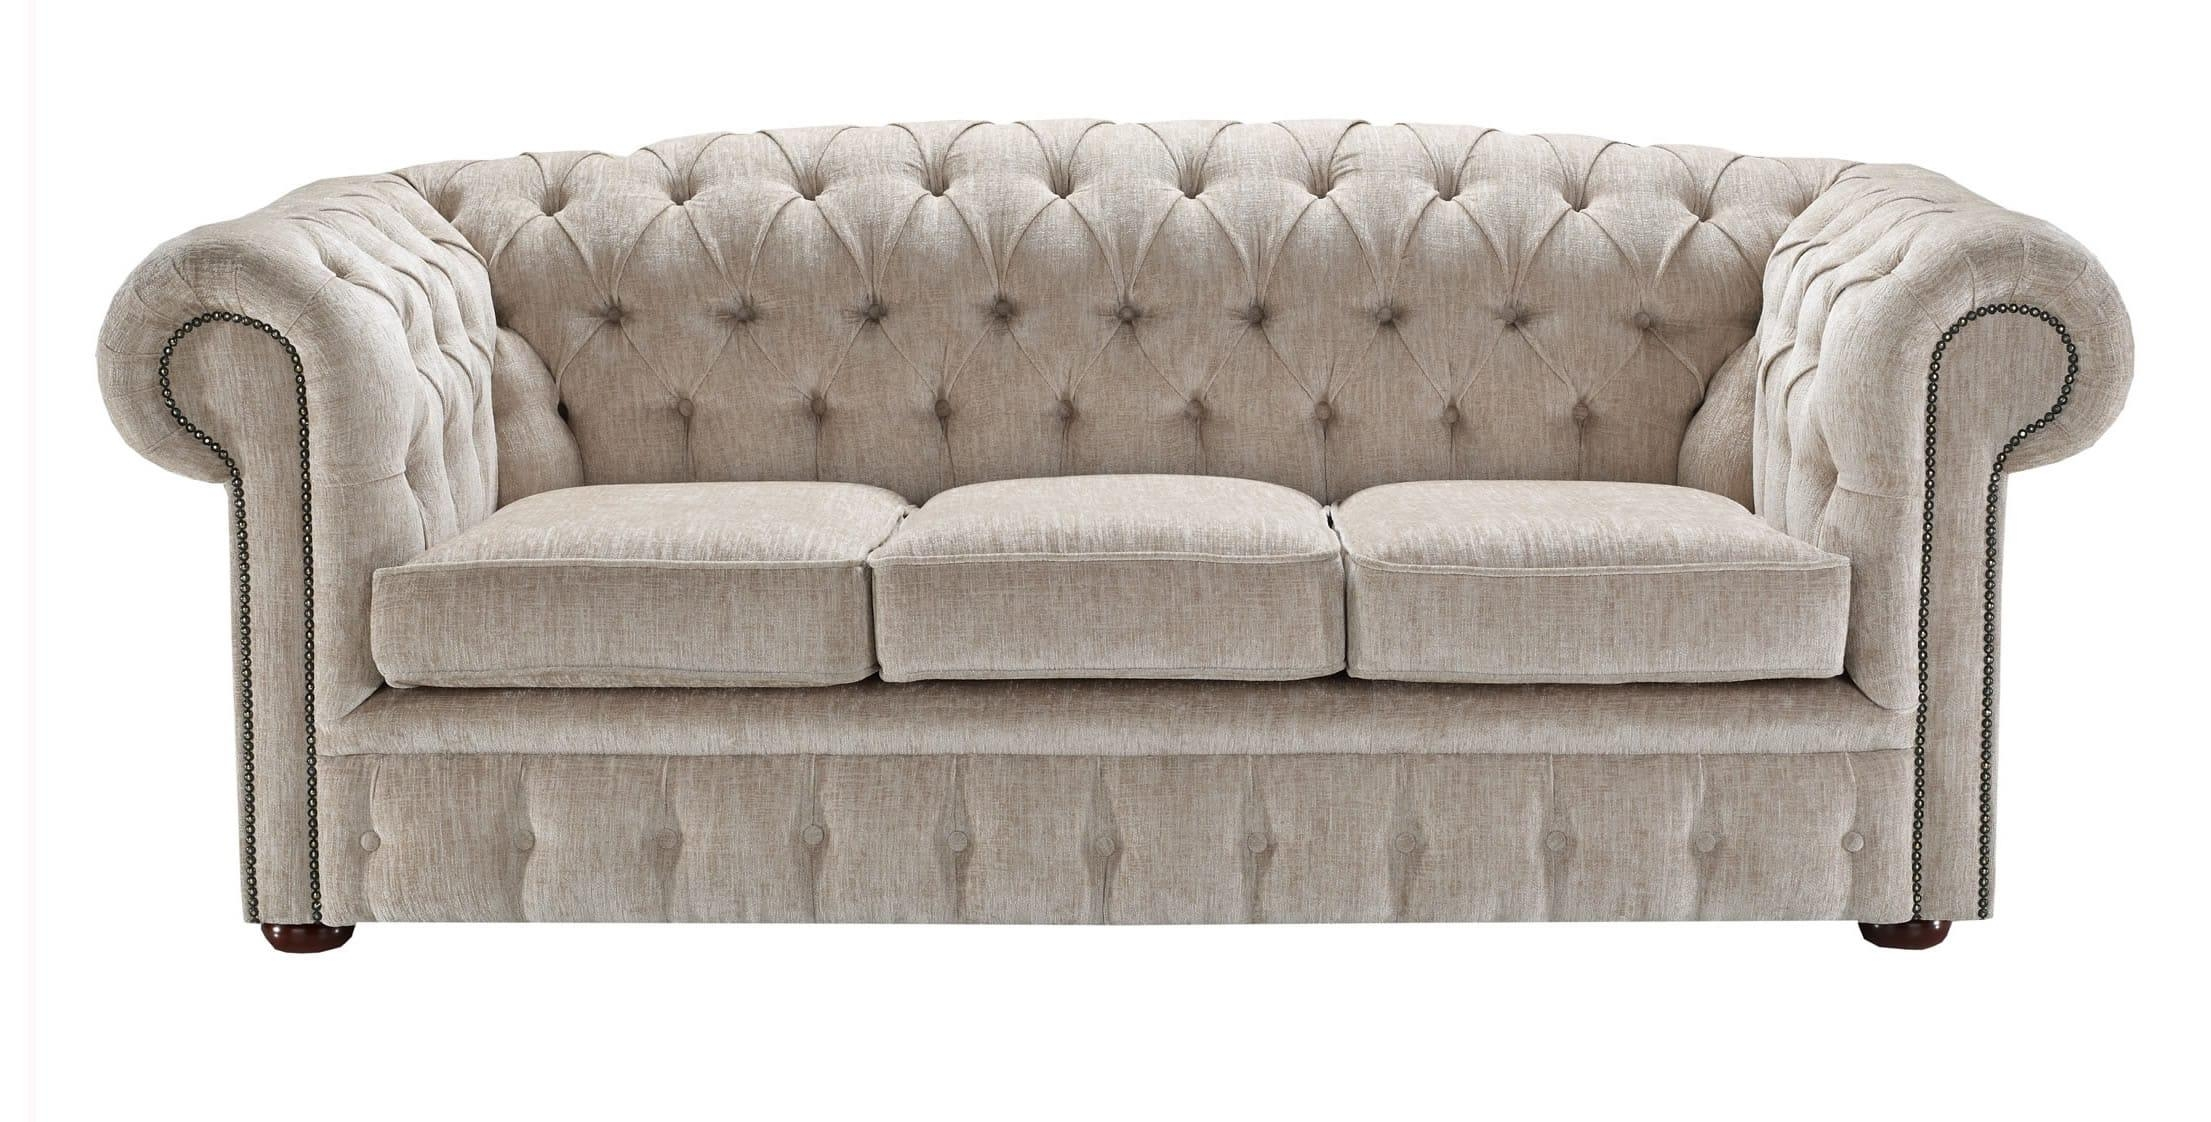 Sofas : Amazing Upholstery Fabric Fabric Recliner Sofa Chenille With Leather And Material Sofas (Image 19 of 21)